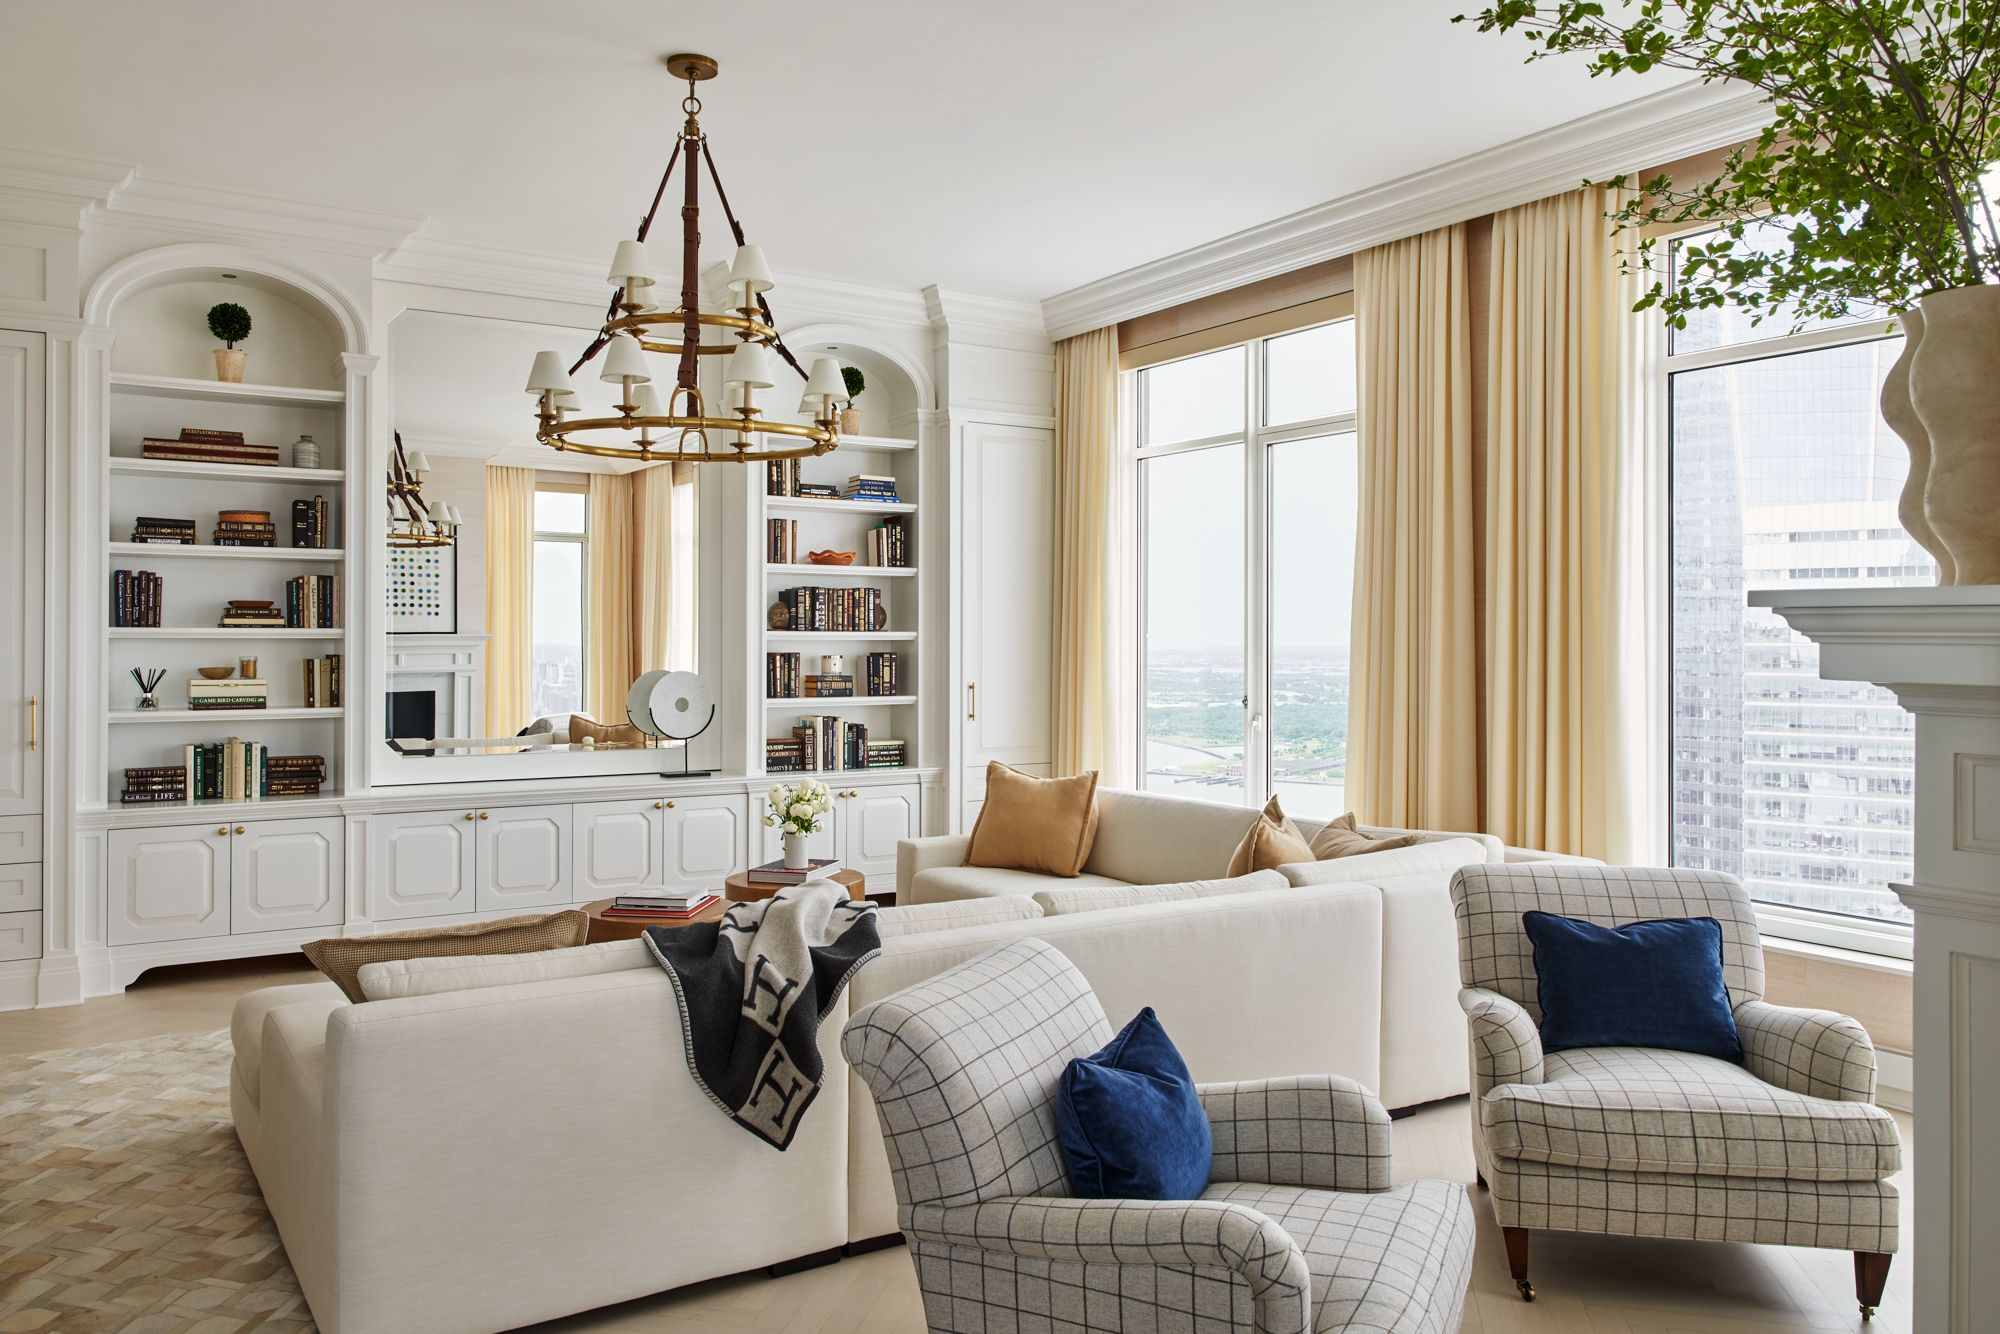 A Sophisticated Tribeca Home with an Inspiring Mix of Modern and Traditional Accents